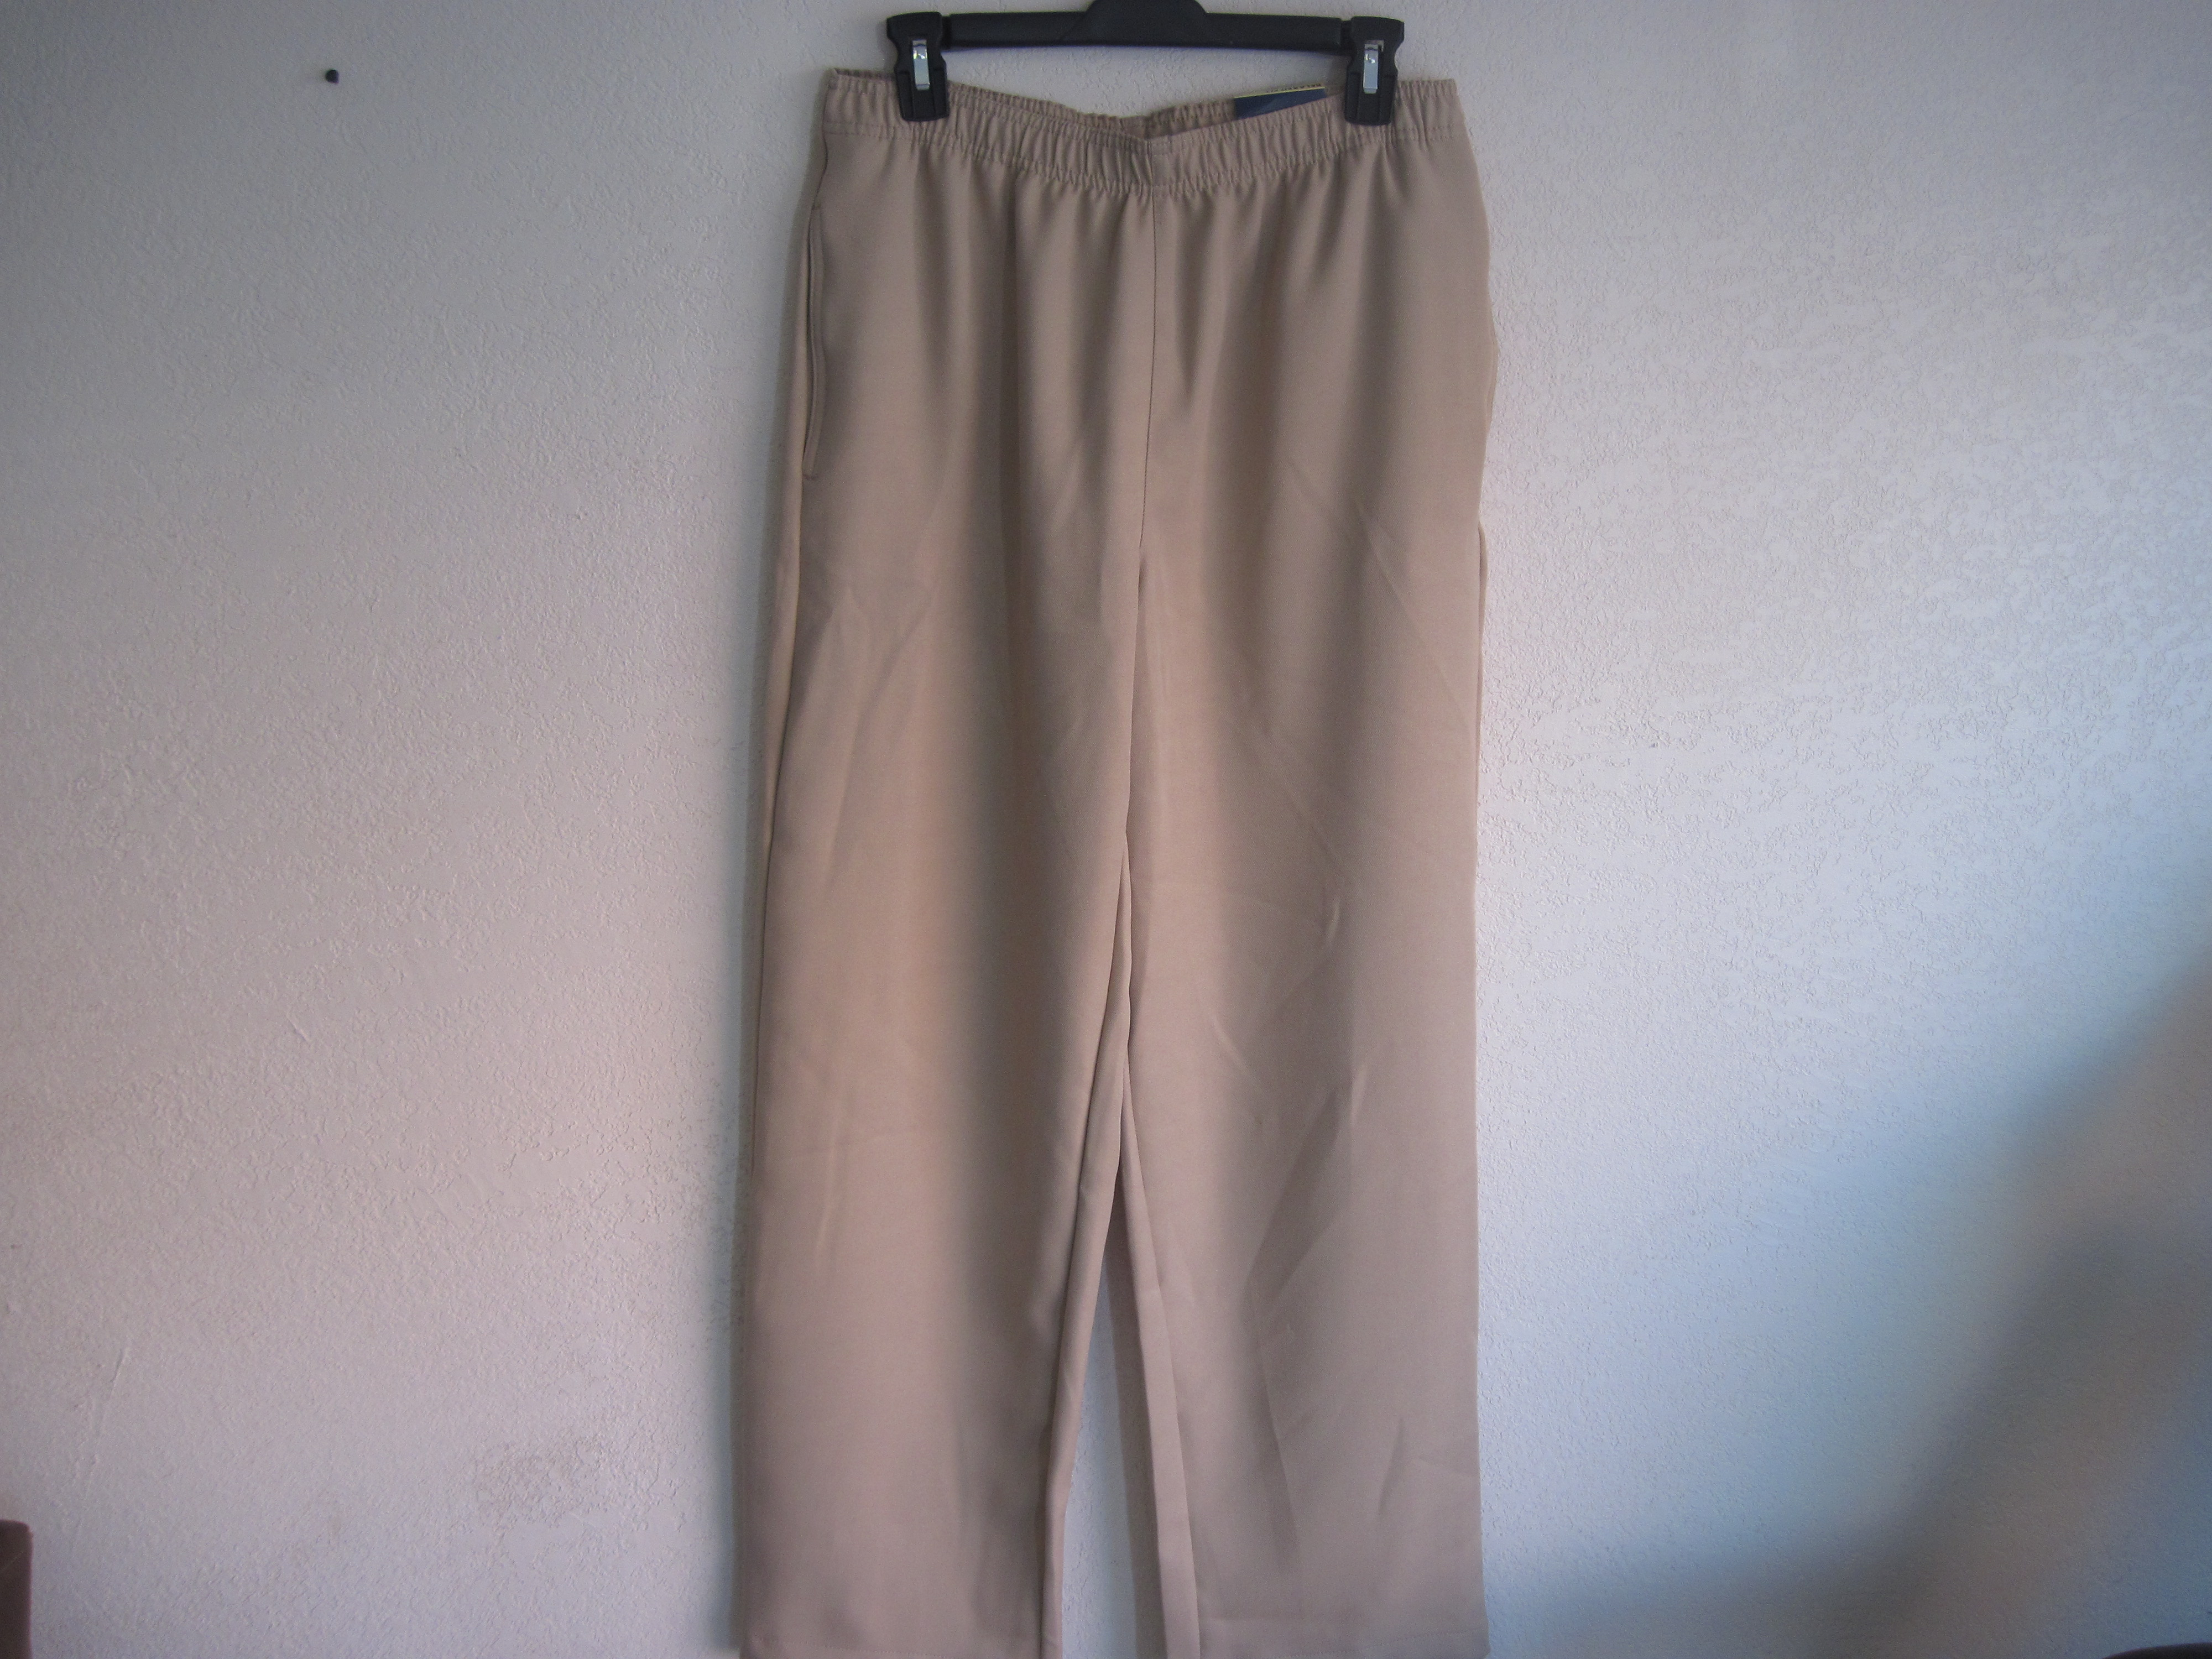 Basic Editions Sz Lg Pull On Slacks (tan)